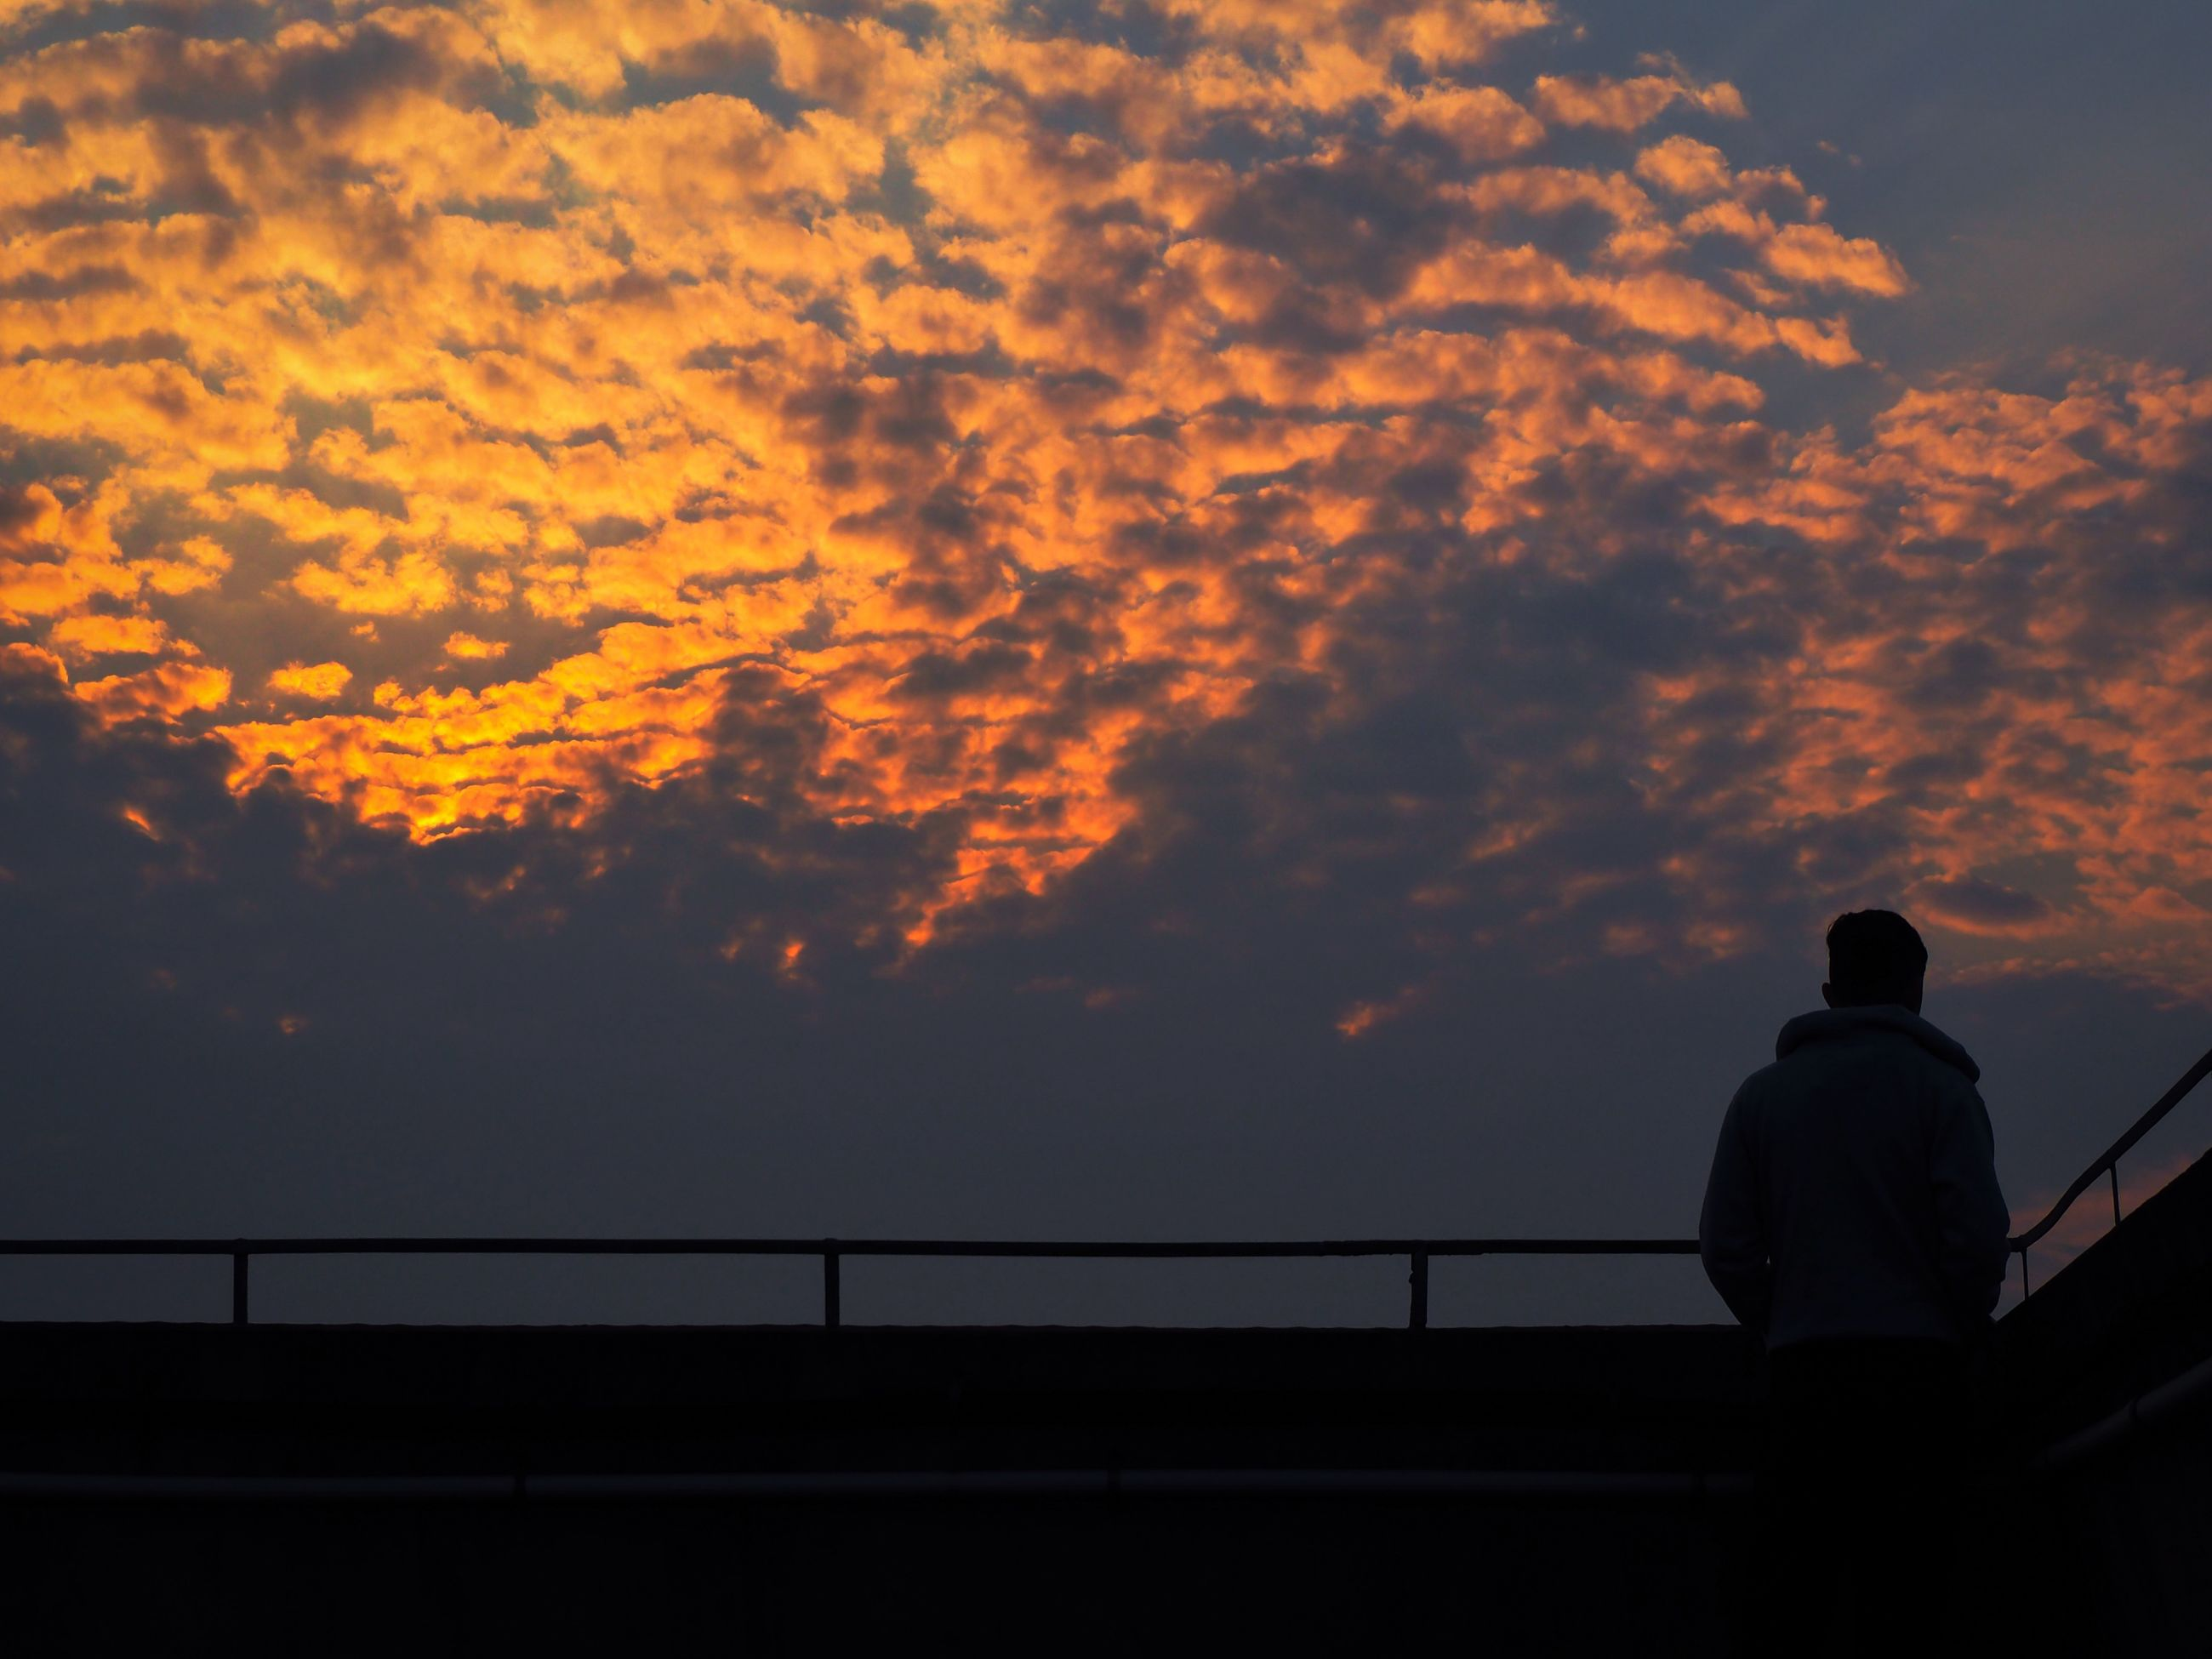 sunset, silhouette, sky, cloud - sky, orange color, railing, cloud, standing, cloudy, dramatic sky, men, scenics, beauty in nature, tranquility, lifestyles, nature, dusk, tranquil scene